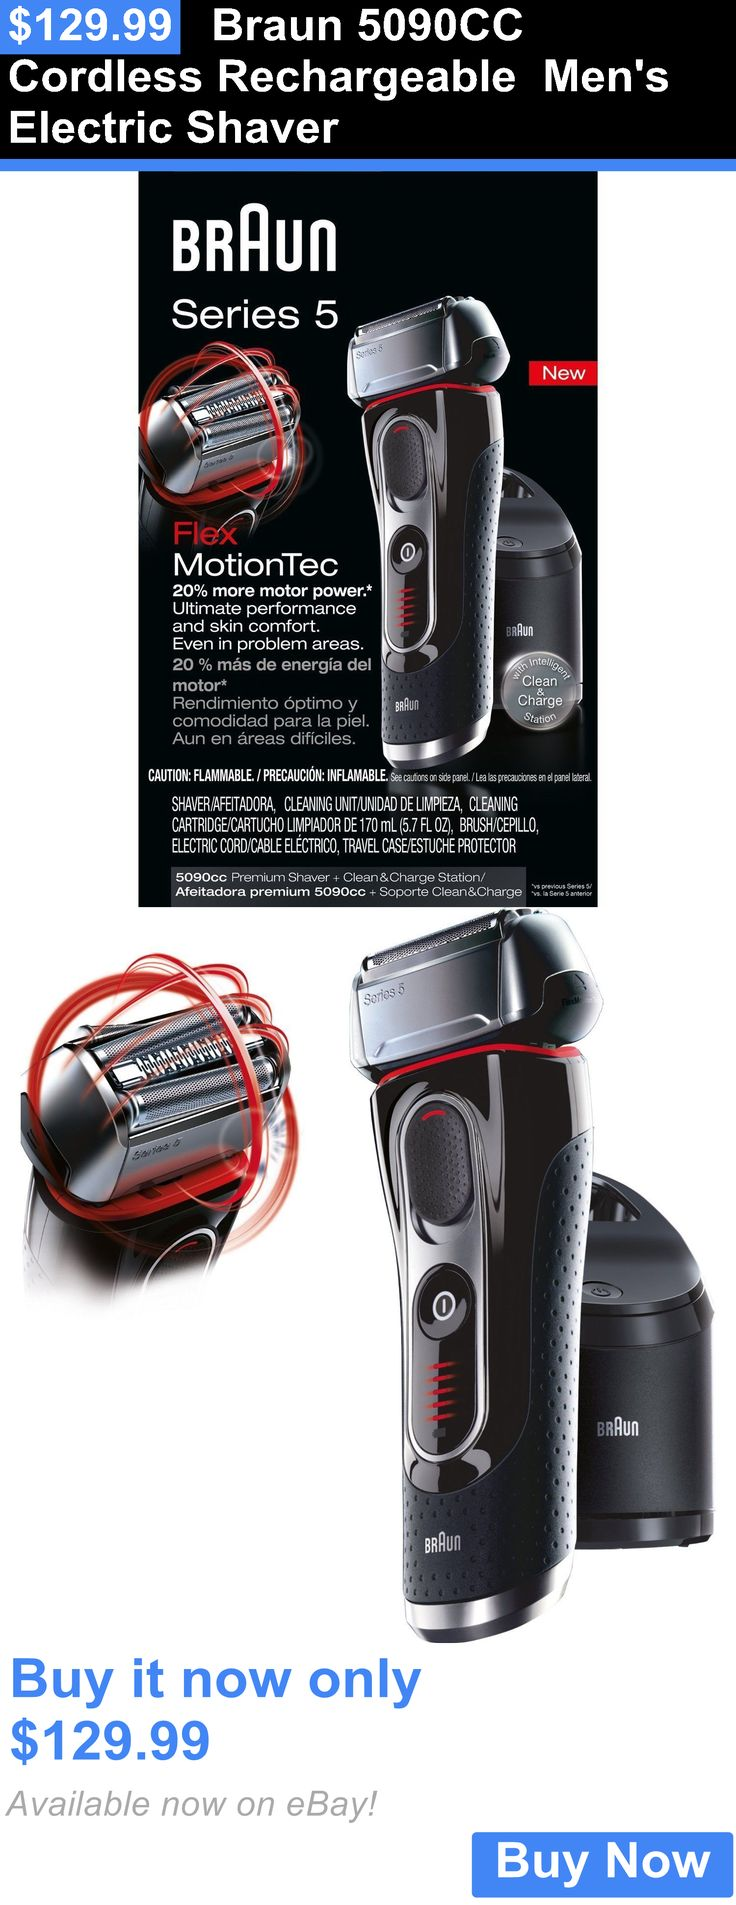 12 Best Christmas Gifts Images On Pinterest Mens Shavers Panasonic Es Rw30 Rechargeable Electric Shaver With Flexible Pivoting Head Shaving Braun 5090cc Cordless Buy It Now Only 12999